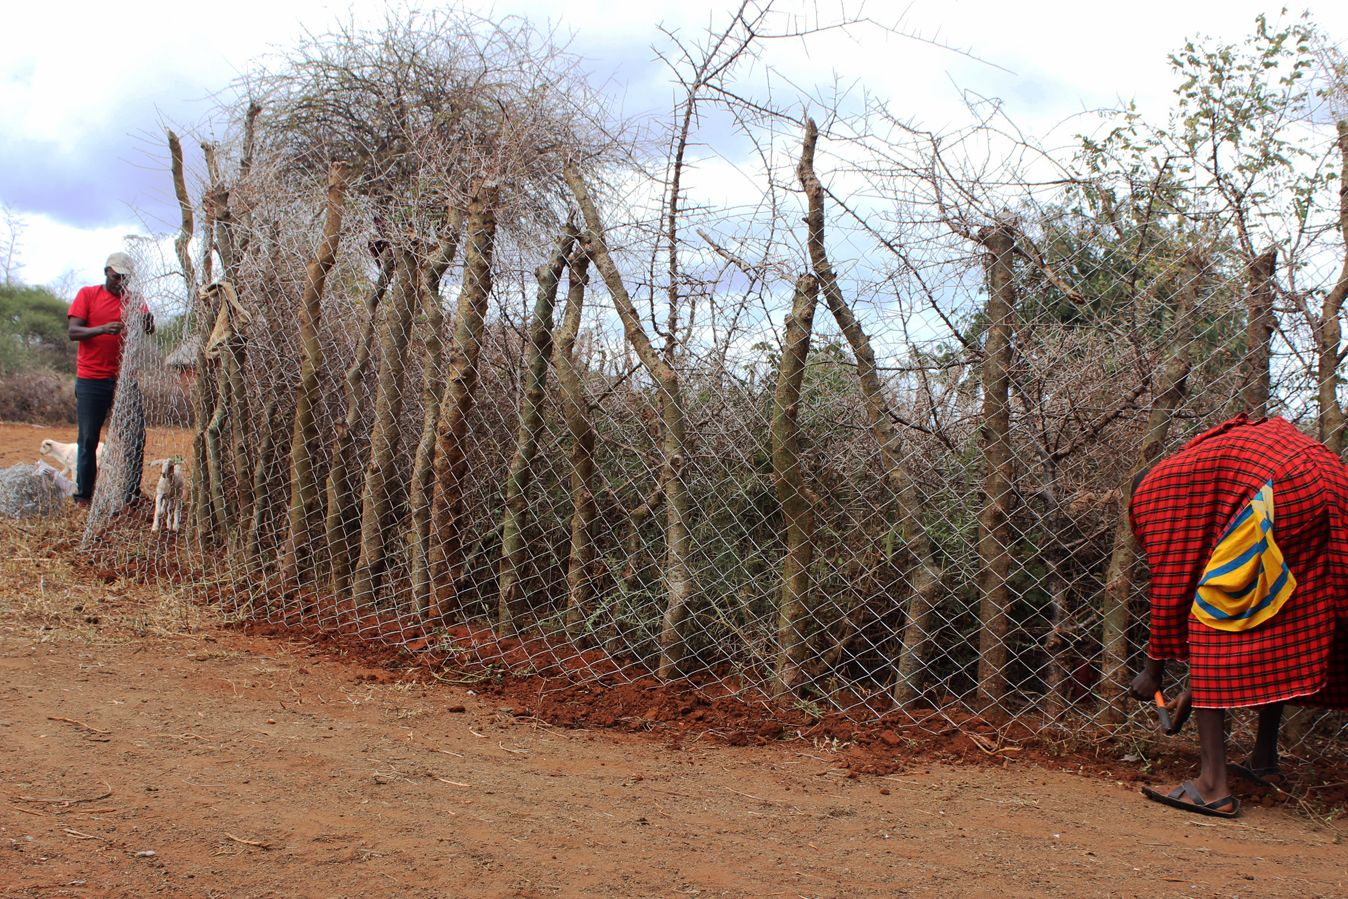 Chain-link fencing is wrapped around a circle of trees to build a Living Wall.